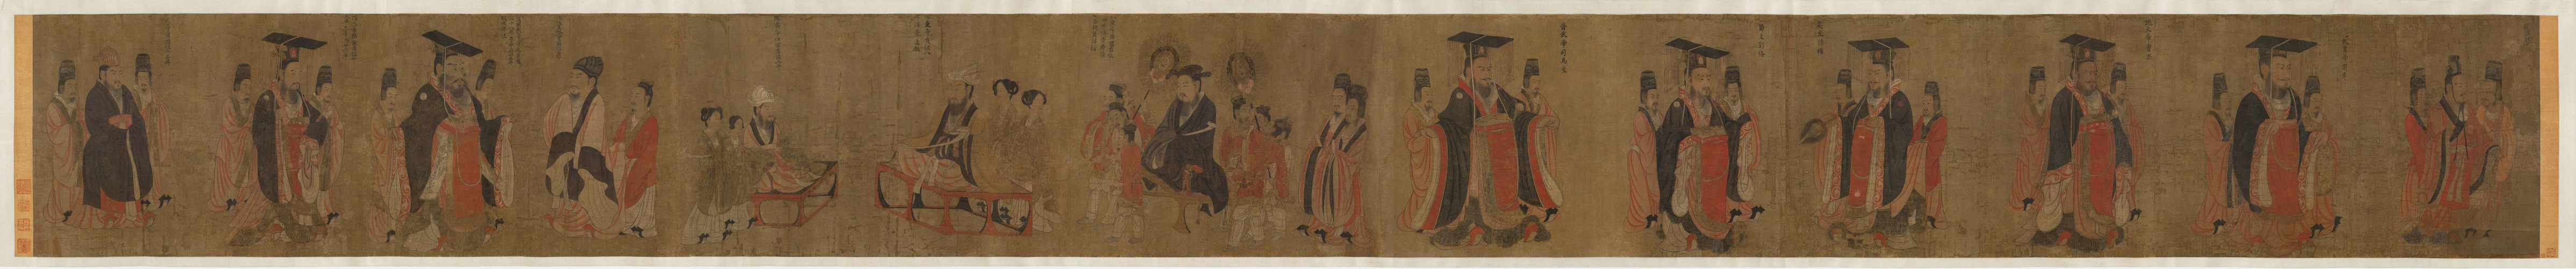 Yan Liben: The Thirteen Emperors